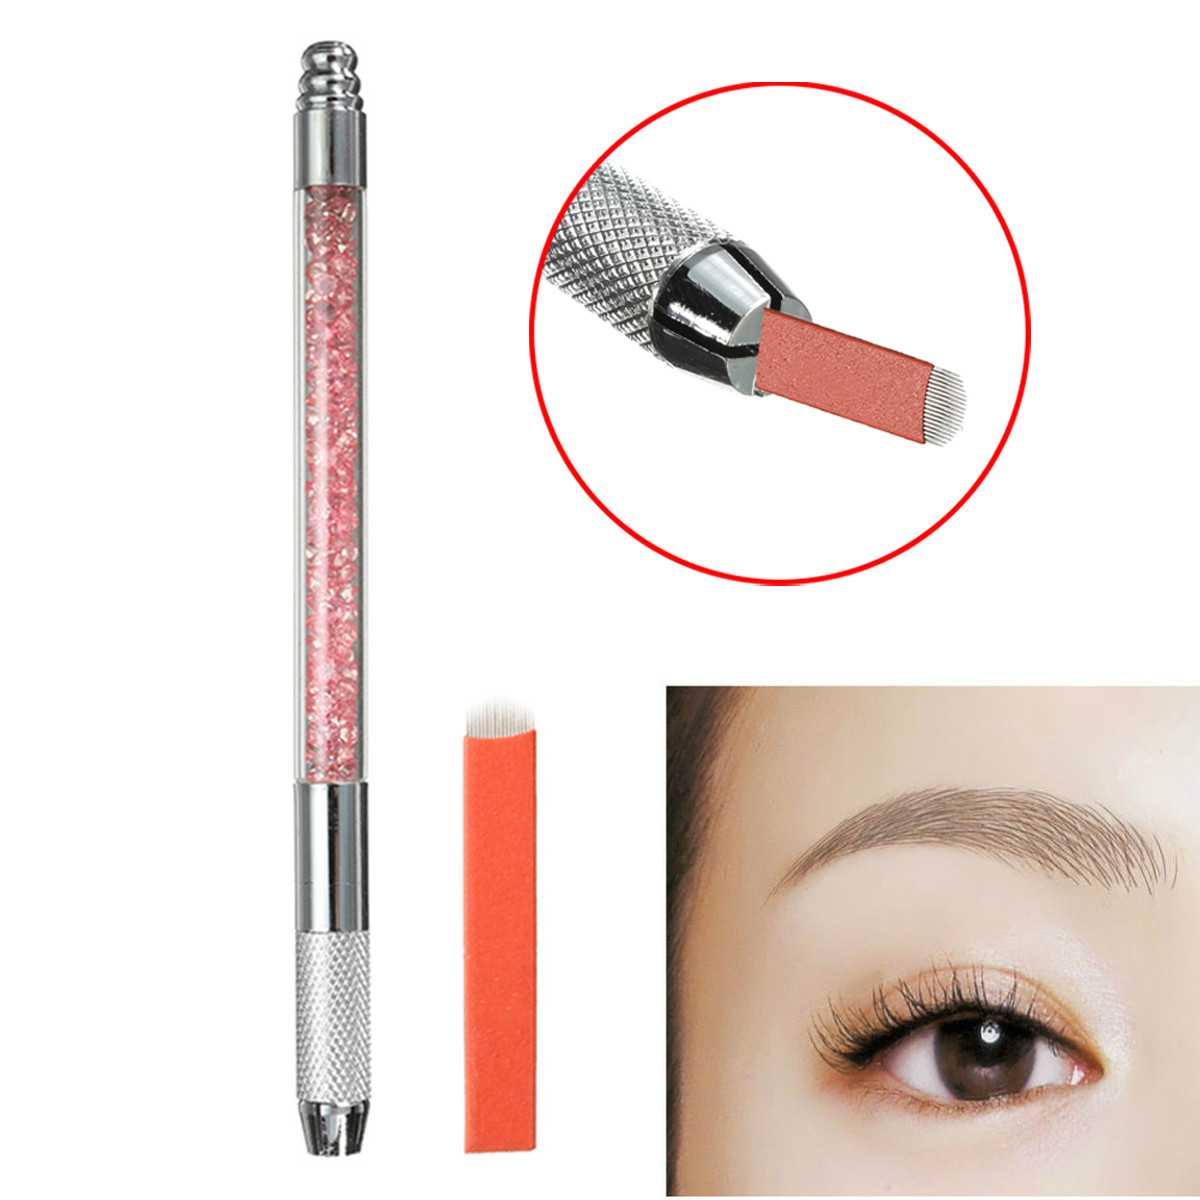 Microblading Manual Tattoo Accessories Pen With Needles Kit